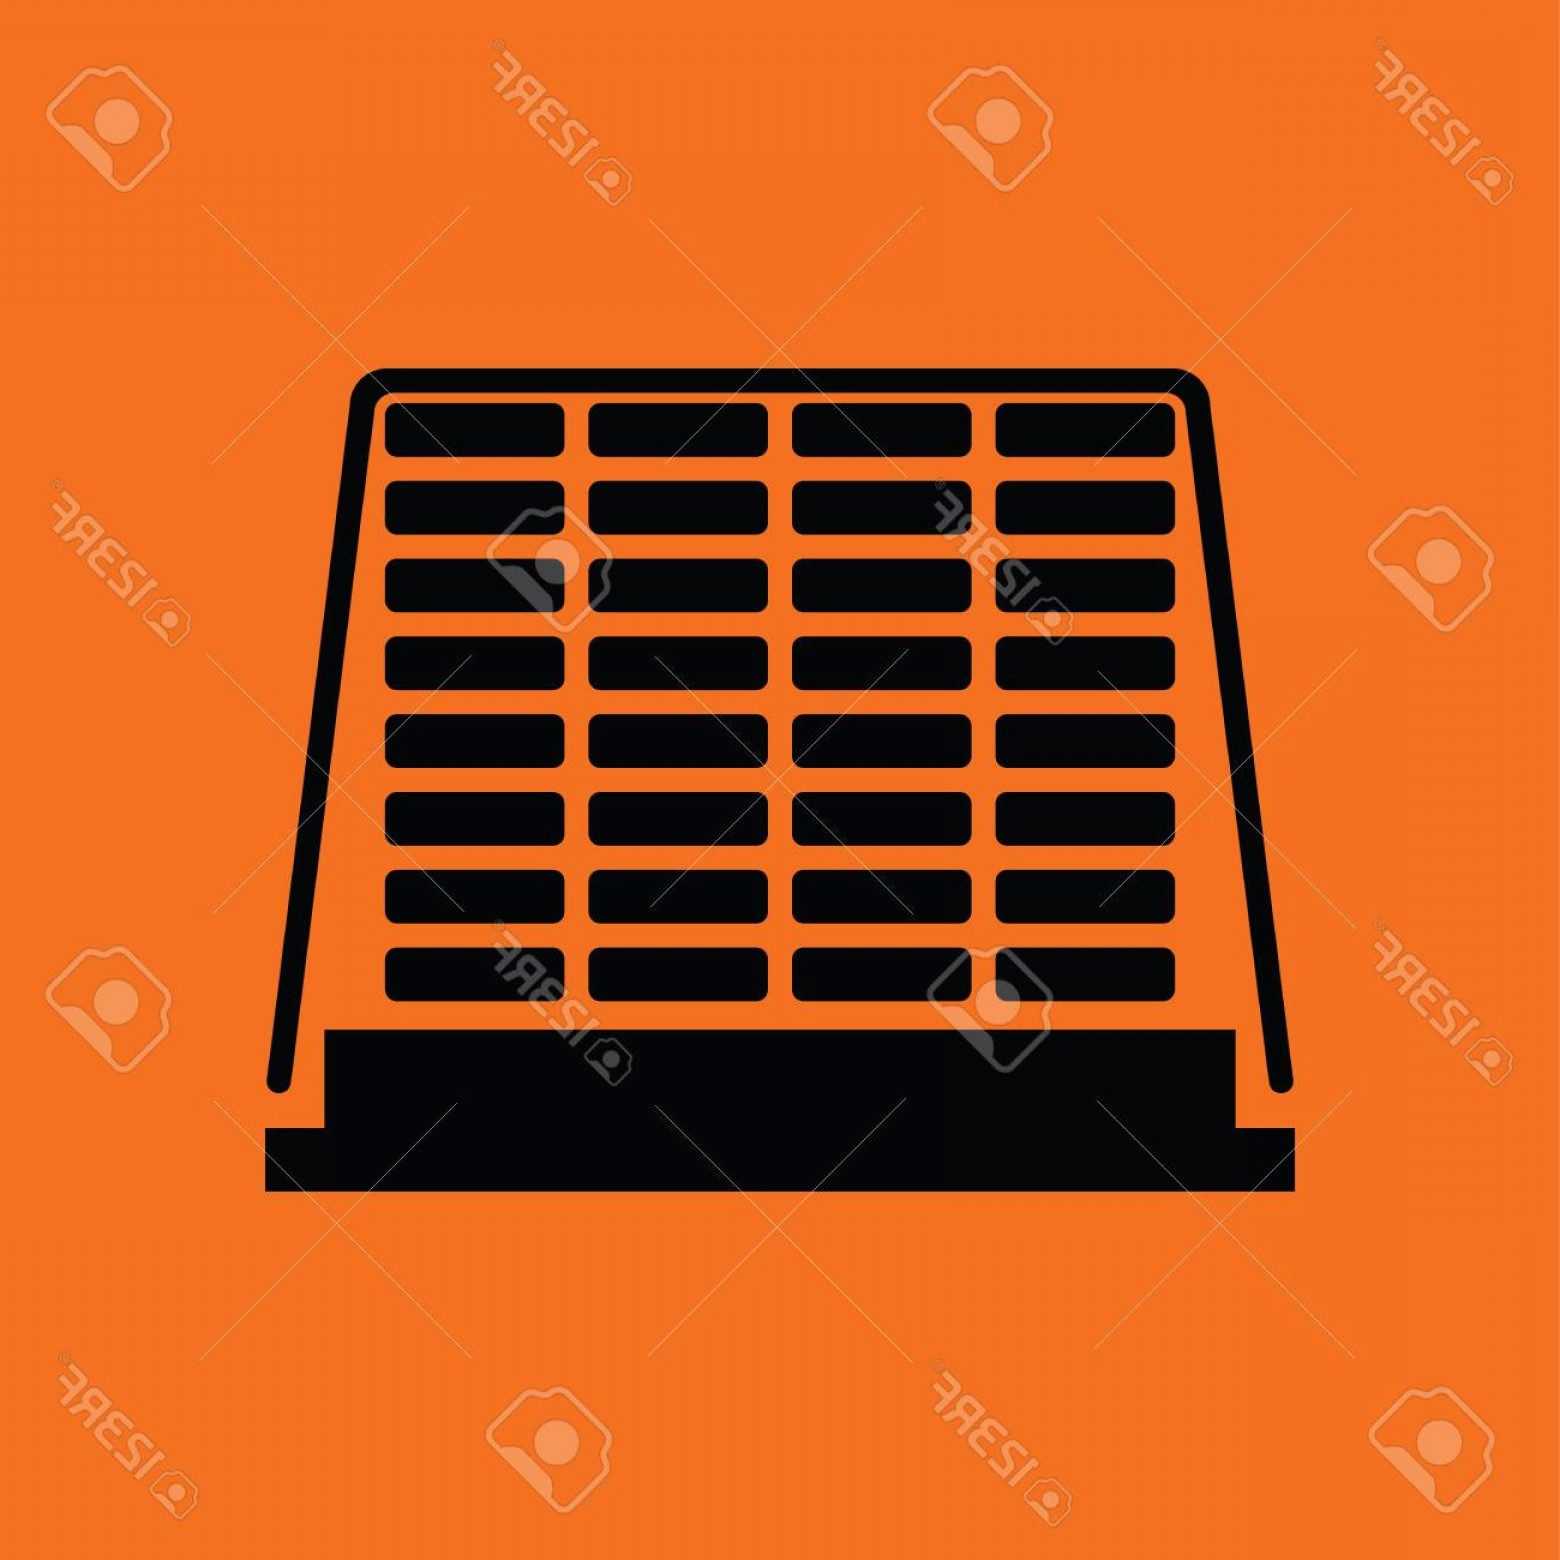 Vector Black Pallet: Photostock Vector Icon Of Construction Pallet Orange Background With Black Vector Illustration